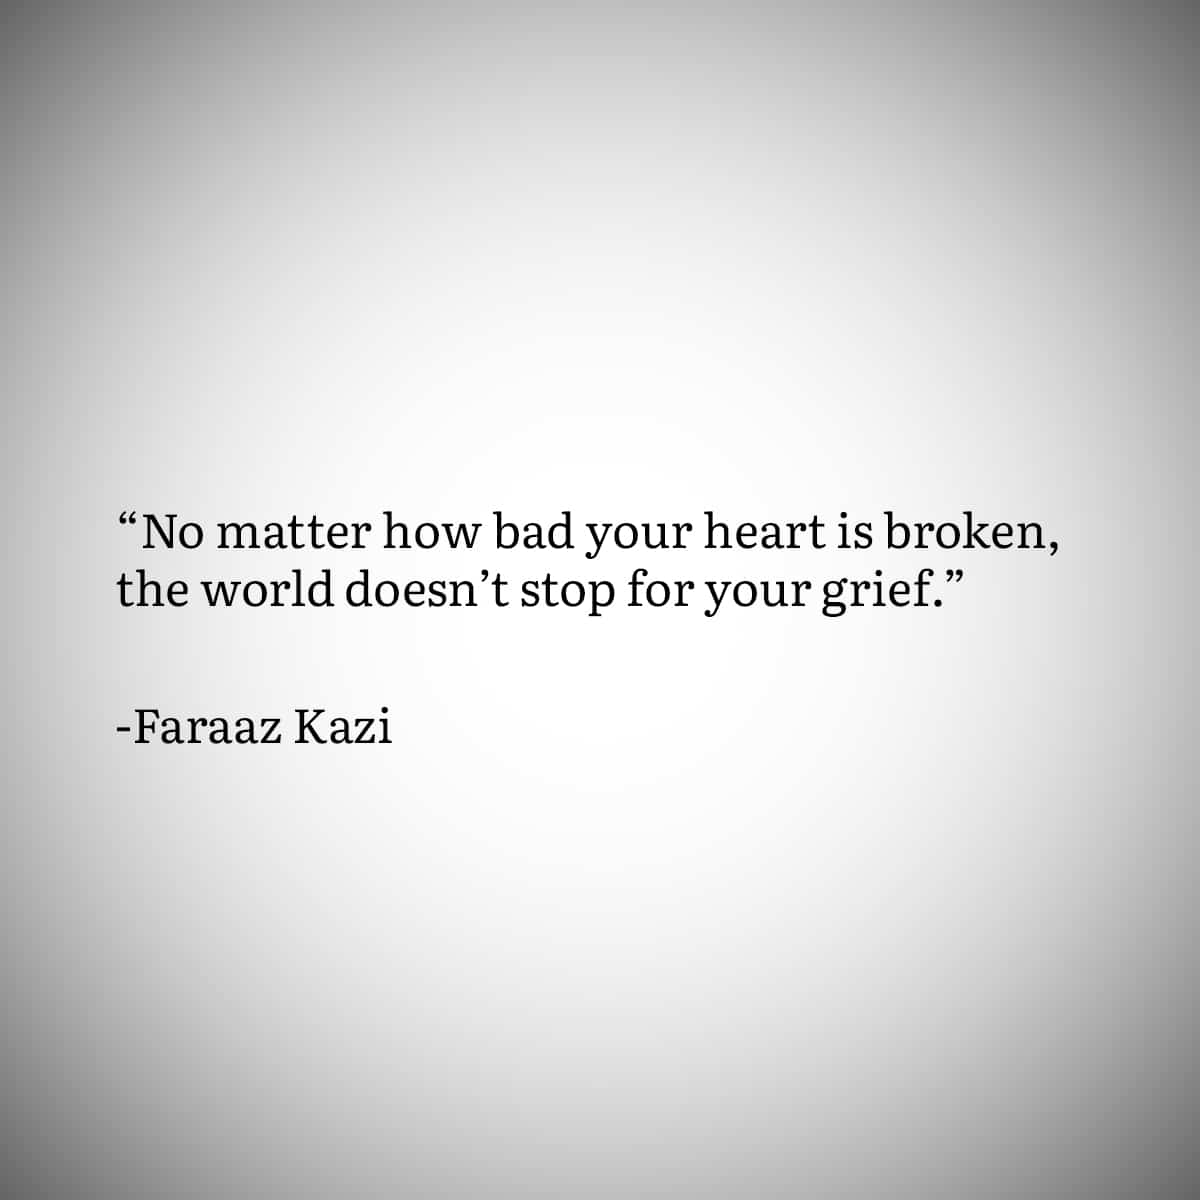 """Broken Heart Quote 4: """"No matter how bad your heart is broken, the world doesn't stop for your grief."""" by Faraaz Kazi"""